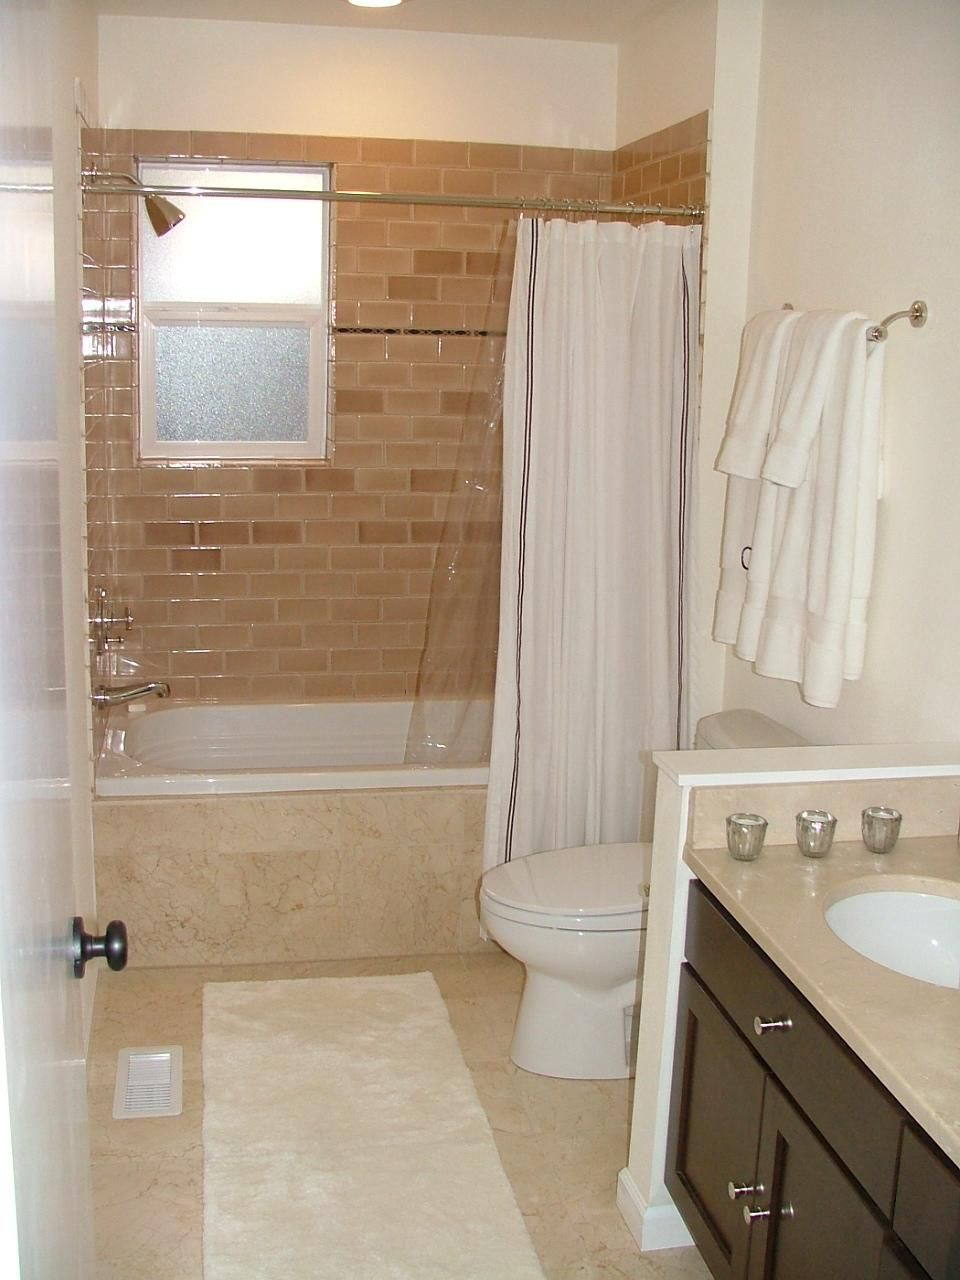 Small Bathrooms Are Less Expensive To Remodel Compared With A - Toilet bath rug for bathroom decorating ideas